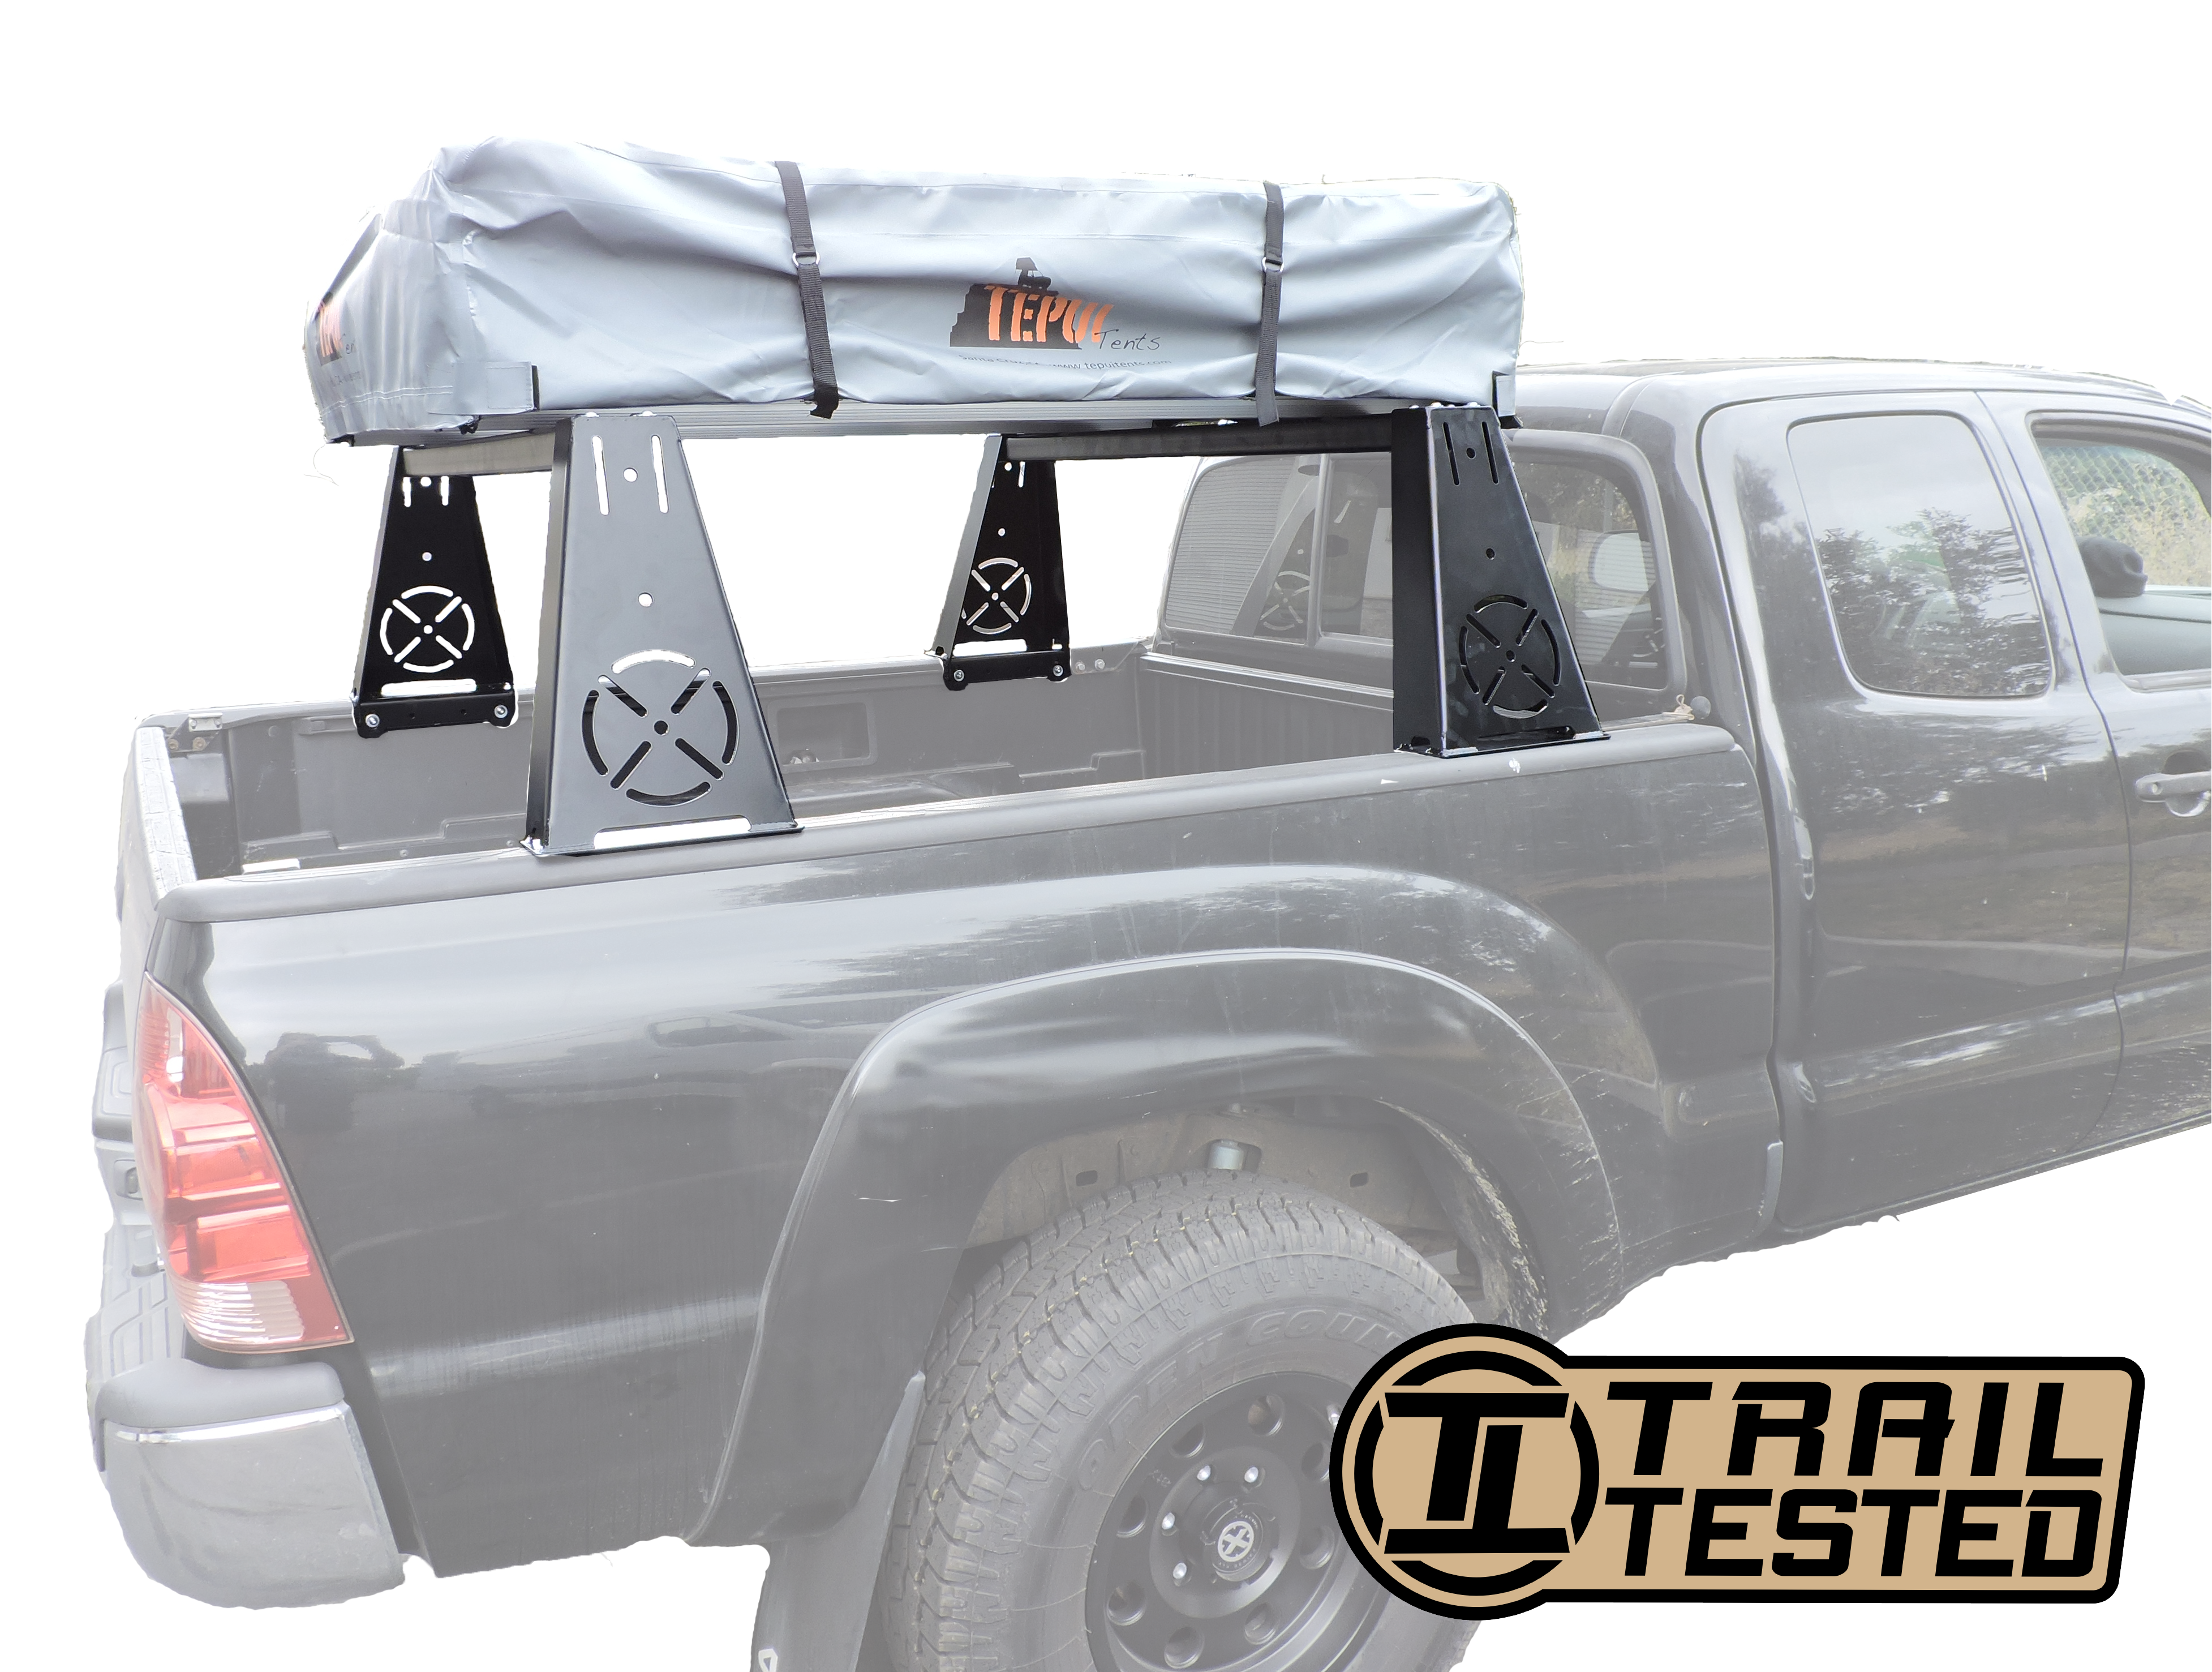 Nomad Bed Rack Universal Truck Bed Rack This Fits Roof Top Tent Kayaks And Other Accessories This Even Fits Ful Adventure Accessories Kayaking Tips Kayaking